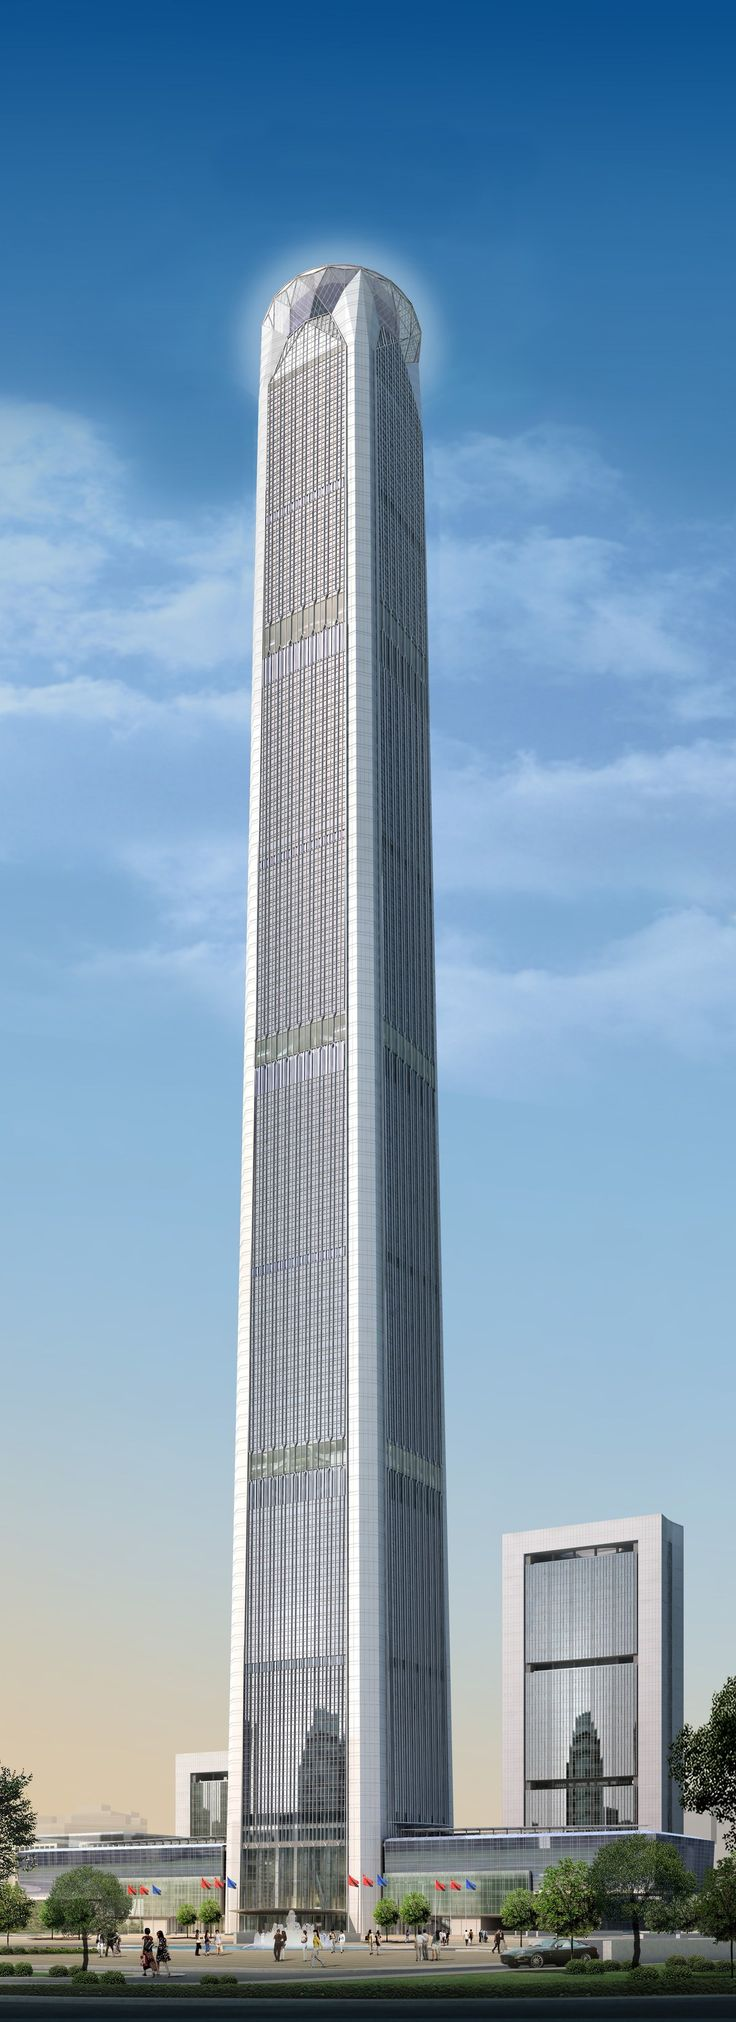 Located in Tianjin, China, the Goldin Finance 117 will tower some 1,959 feet in the sky when it's completed in 2016. Designed by the Hong Kong–based firm P&T Architects and Engineers Ltd., the building will include 117 floors above the ground, while four floors will be below ground.